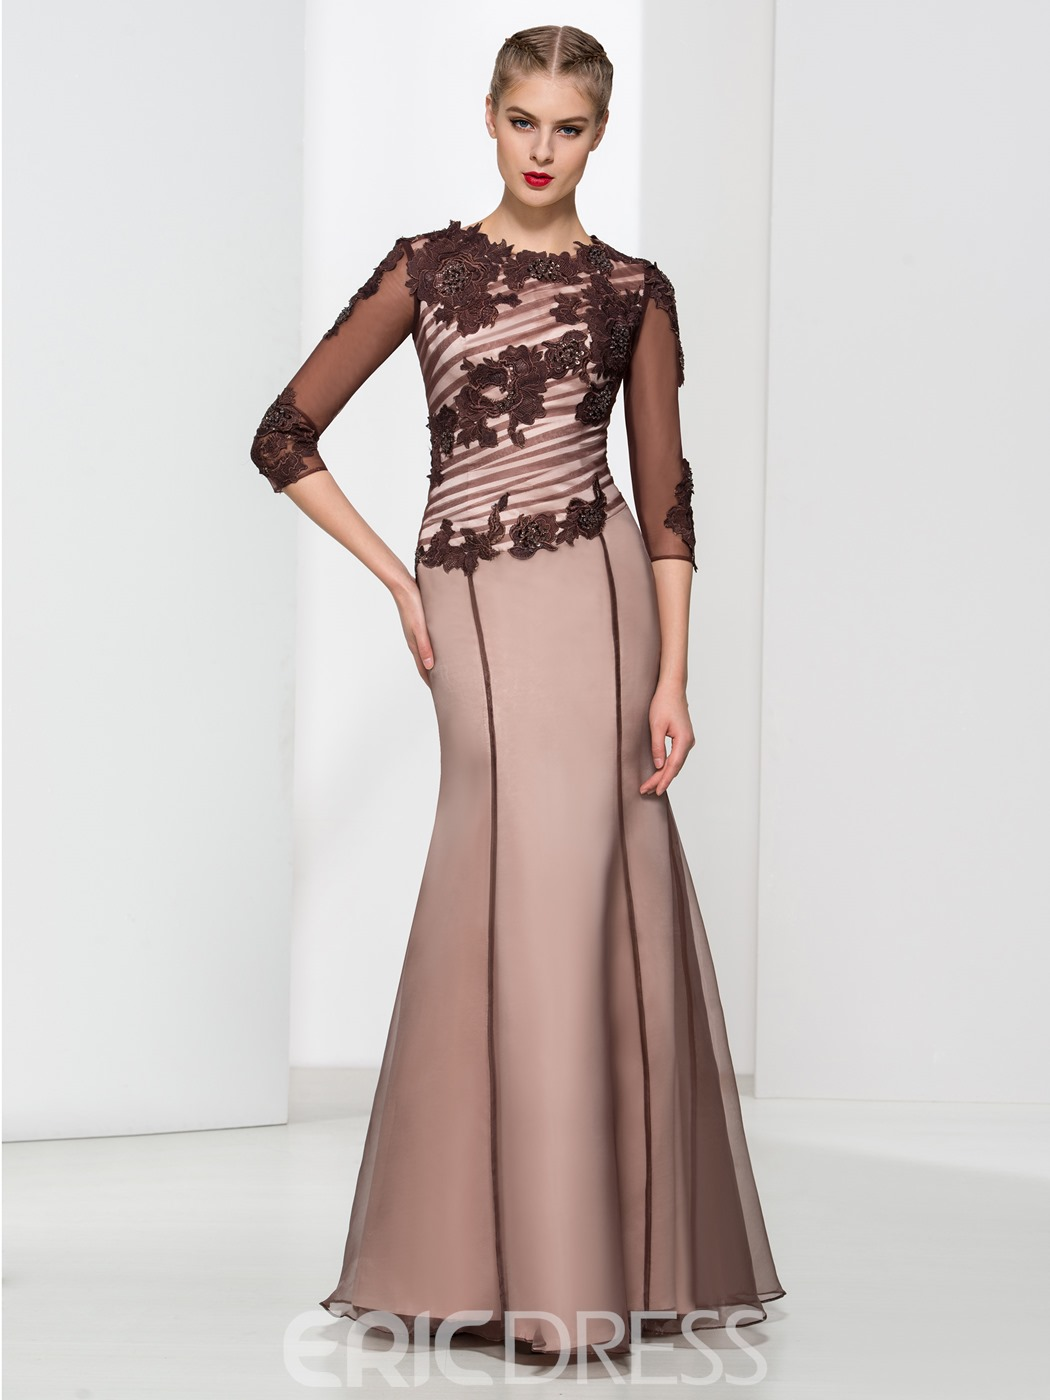 Ericdress Scoop Neck Appliques Sequins Sheath Evening Dress